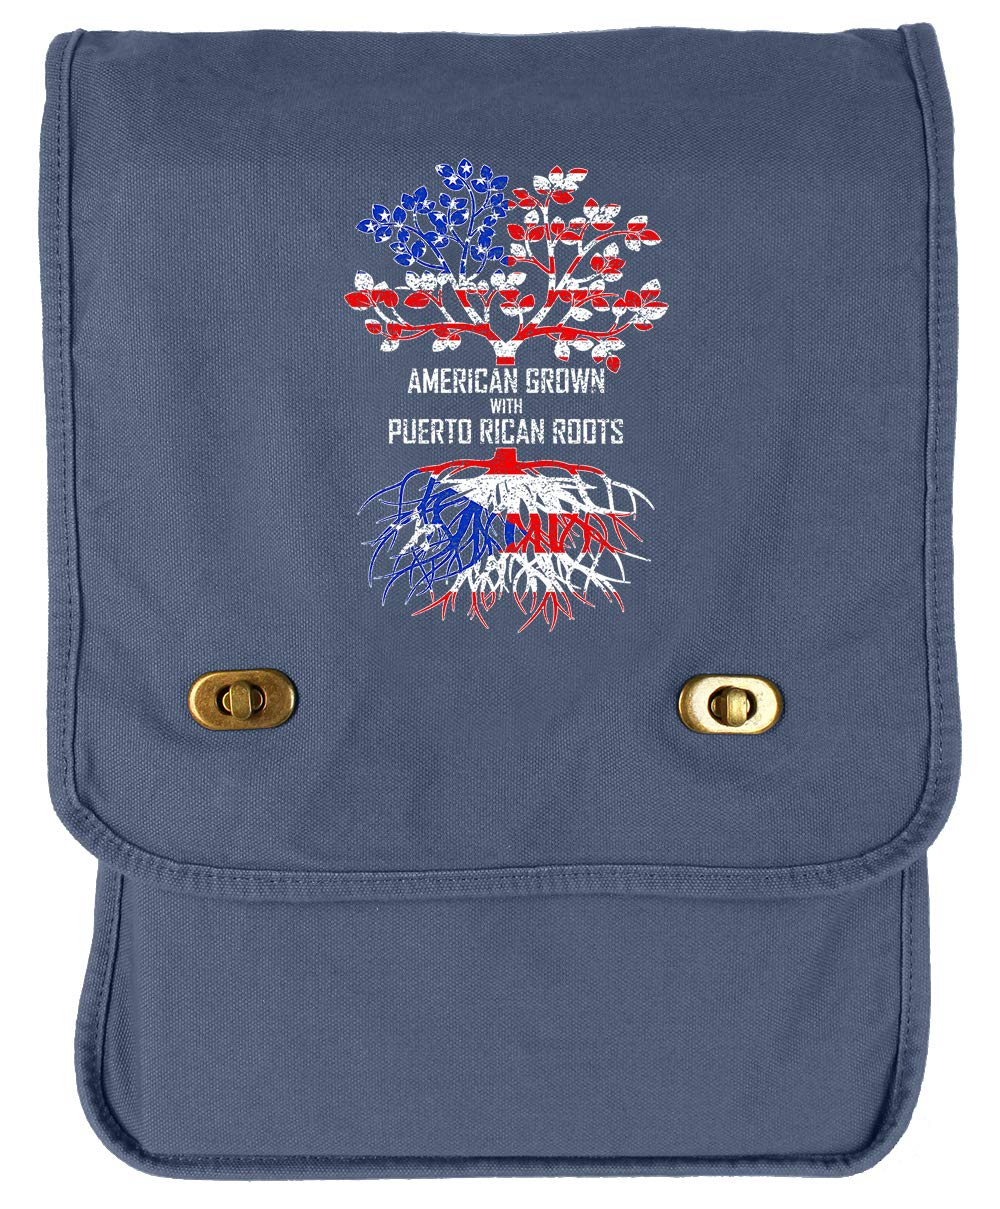 Tenacitee American Grown with Puerto Rican Roots Green Brushed Canvas Messenger Bag